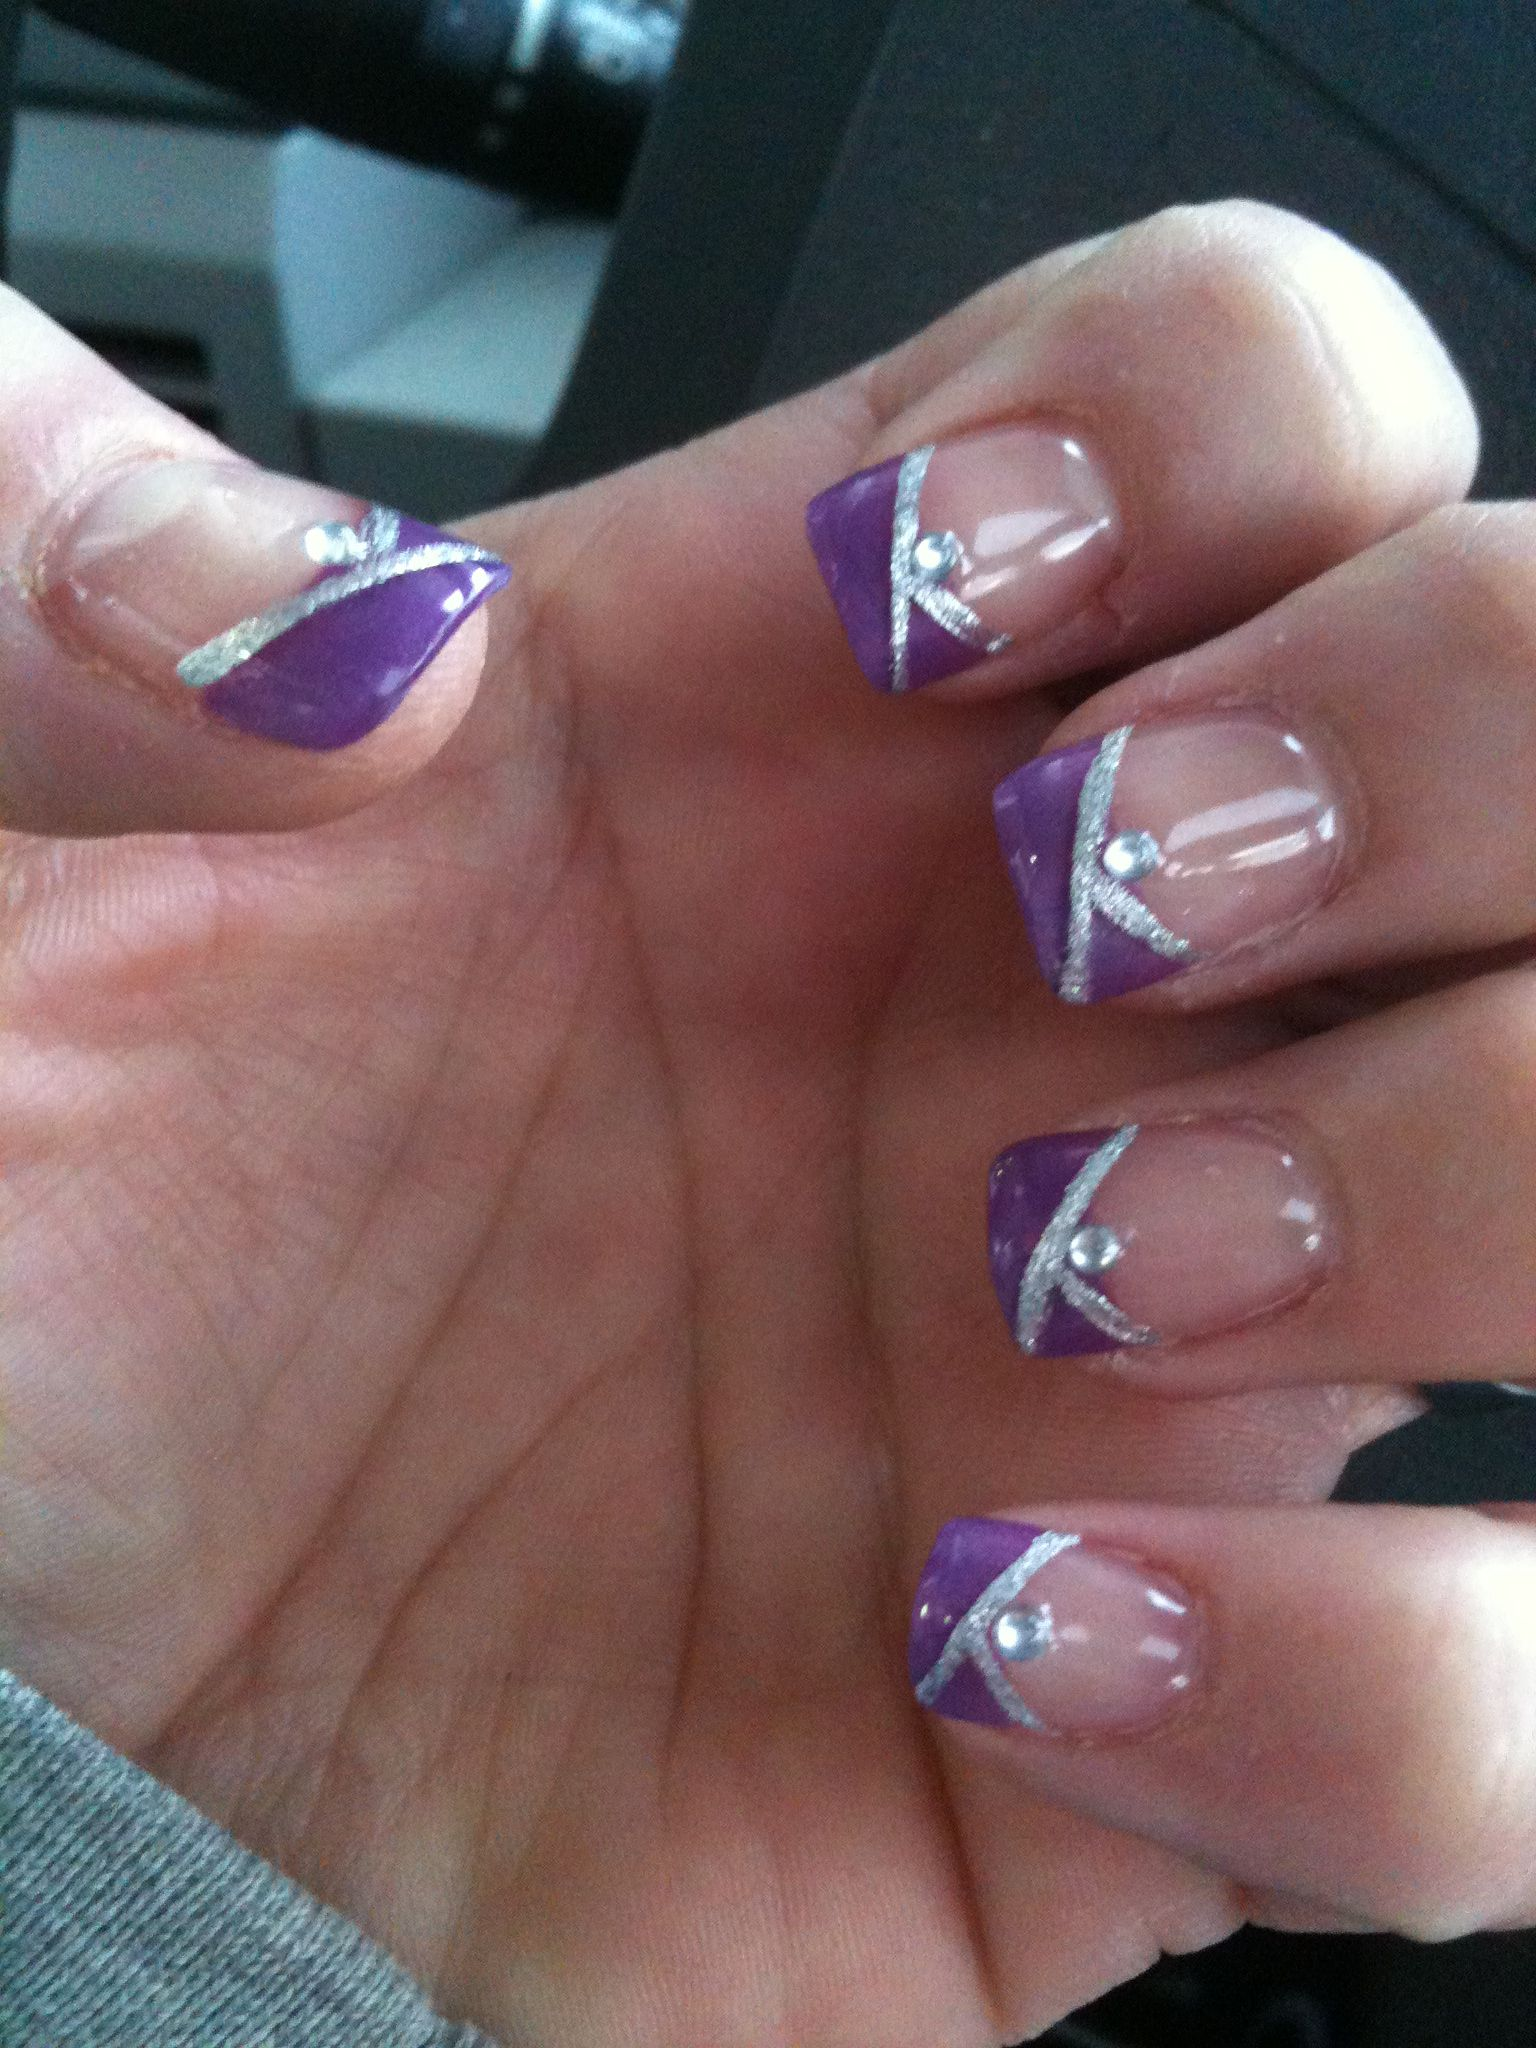 Nail color to match purple dress